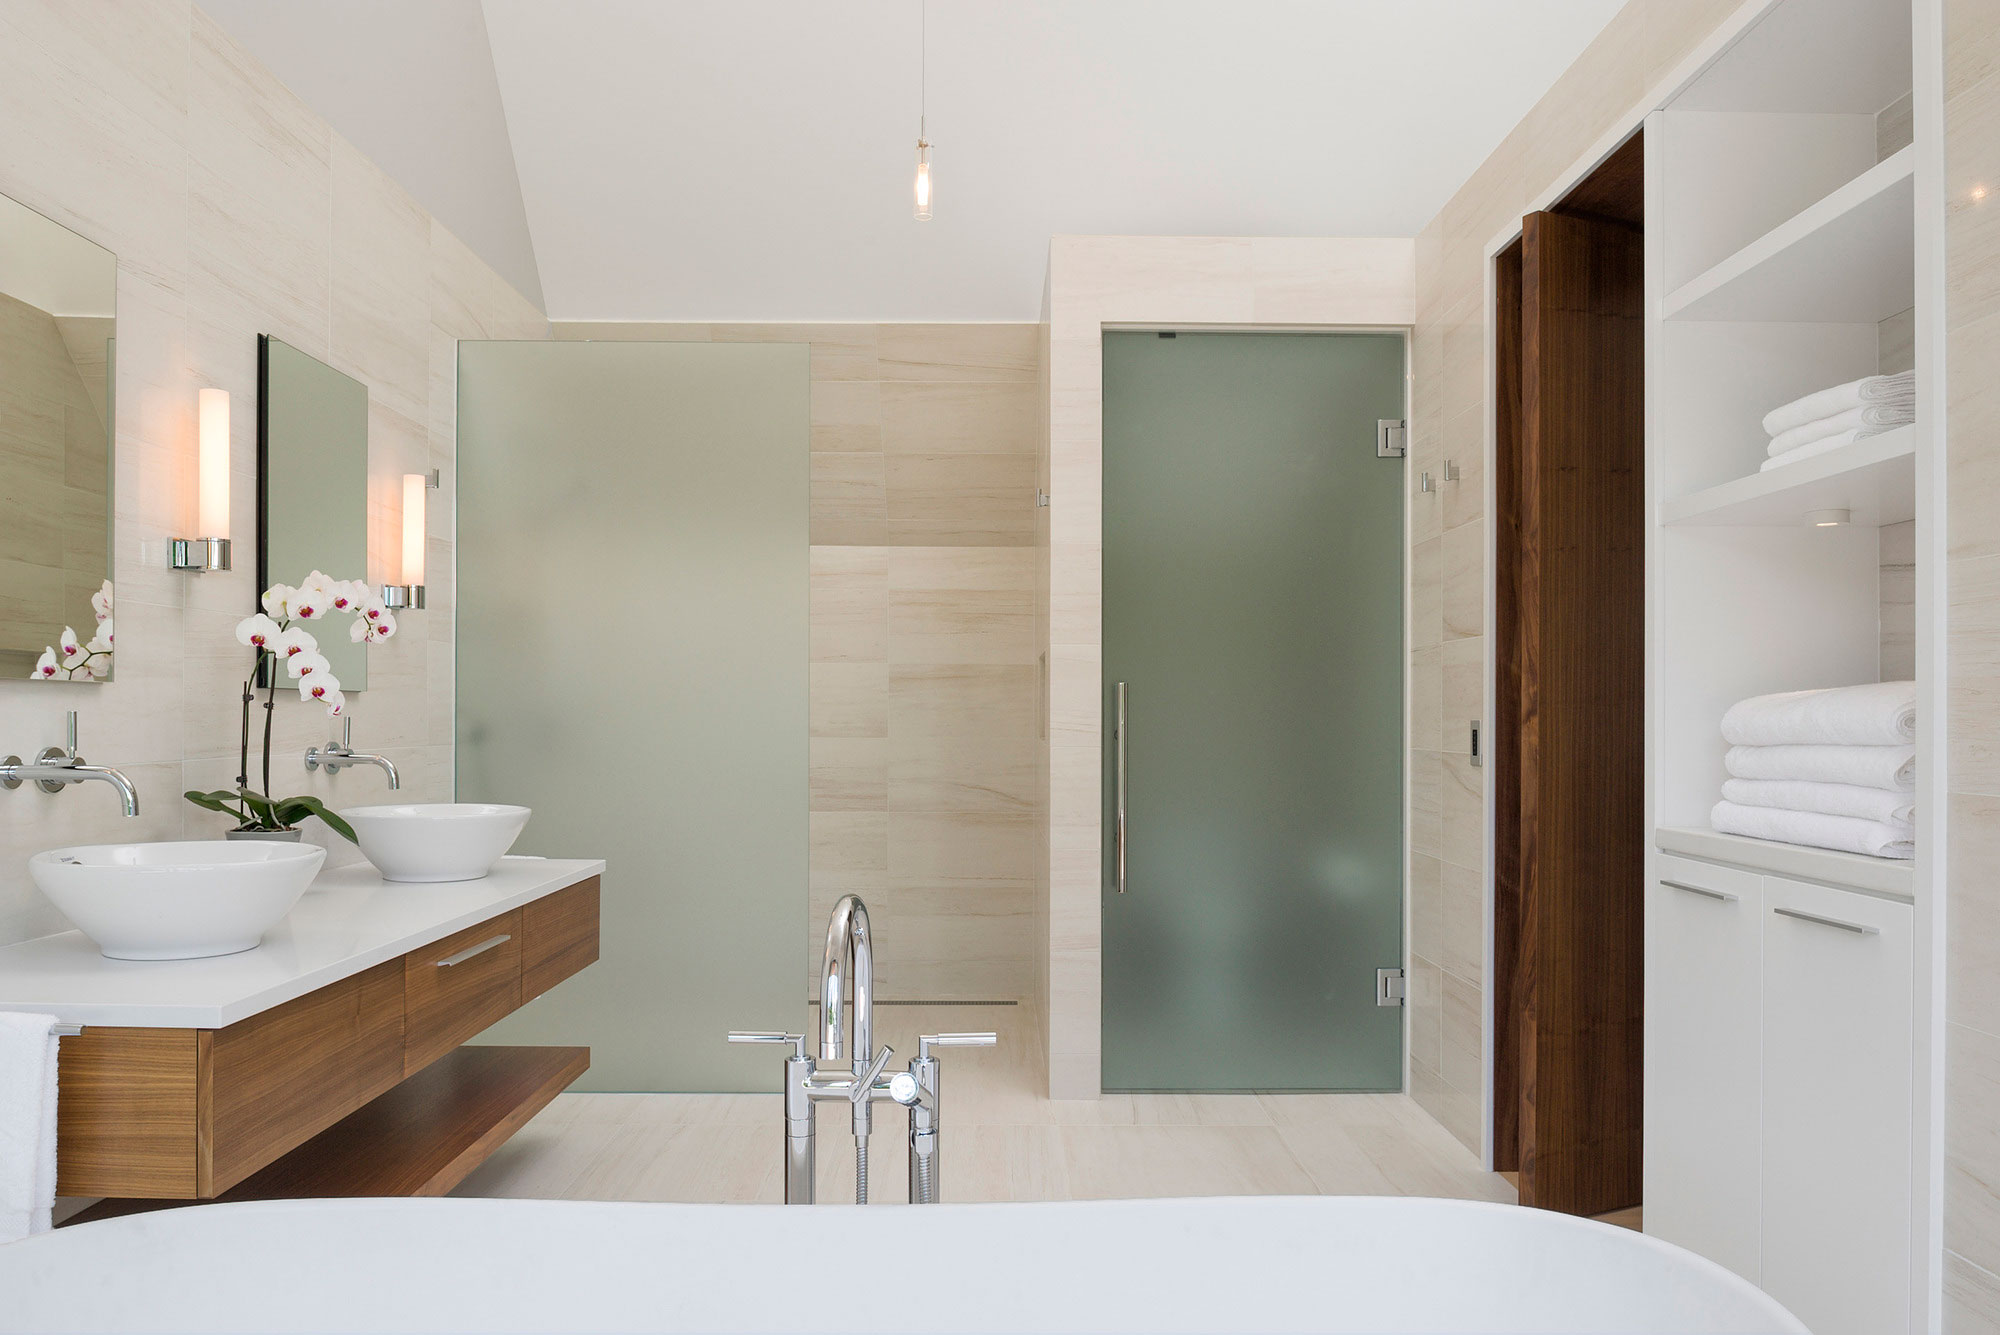 Frosted glass door ideas include various trimmings   Interior   Exterior  Doors Designs  Installation Ideas. Frosted glass door ideas include various trimmings   Interior